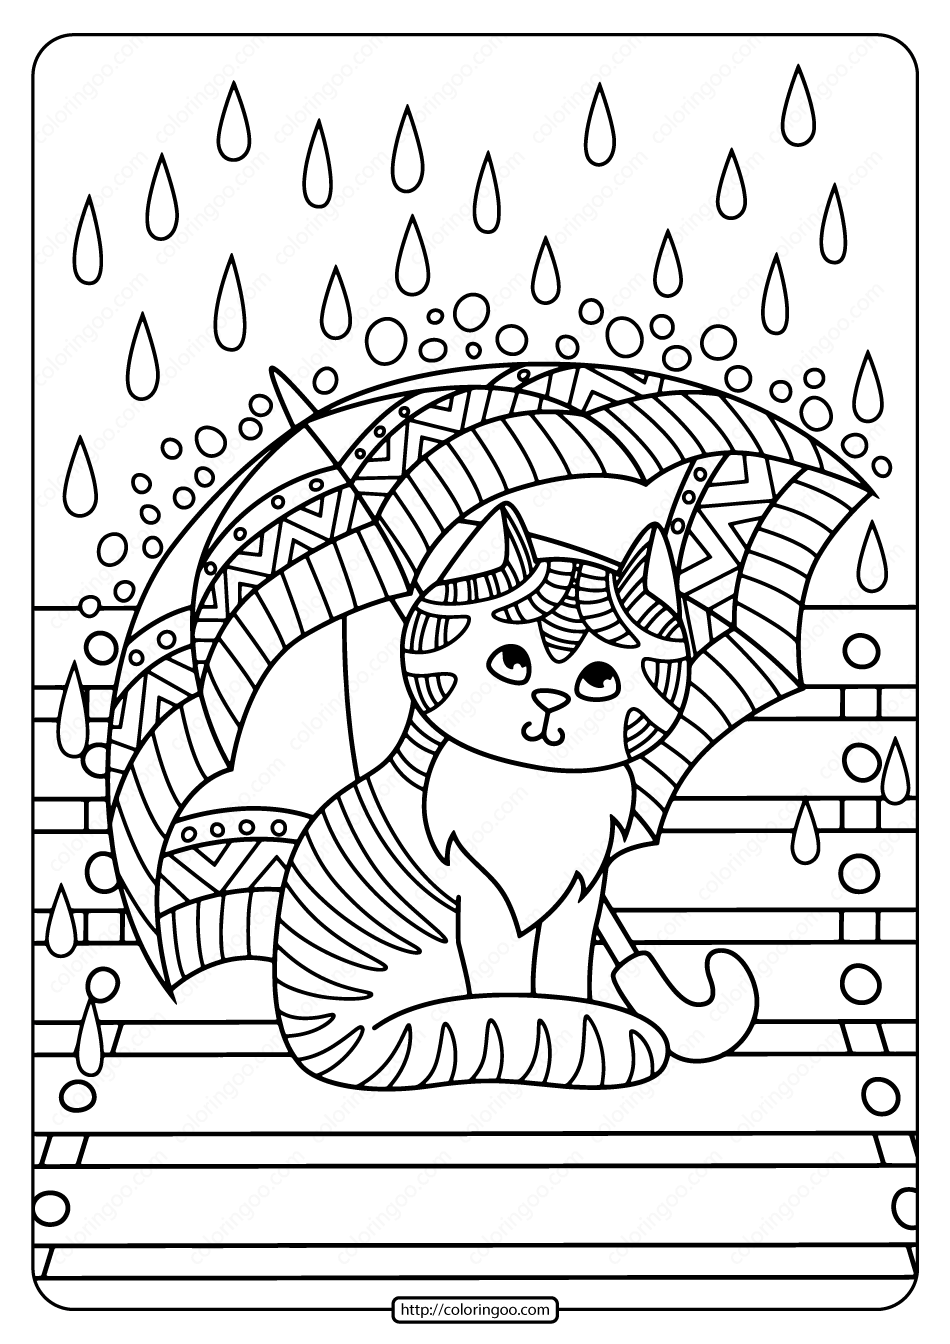 Kitten with Umbrella in the Rain Coloring Page